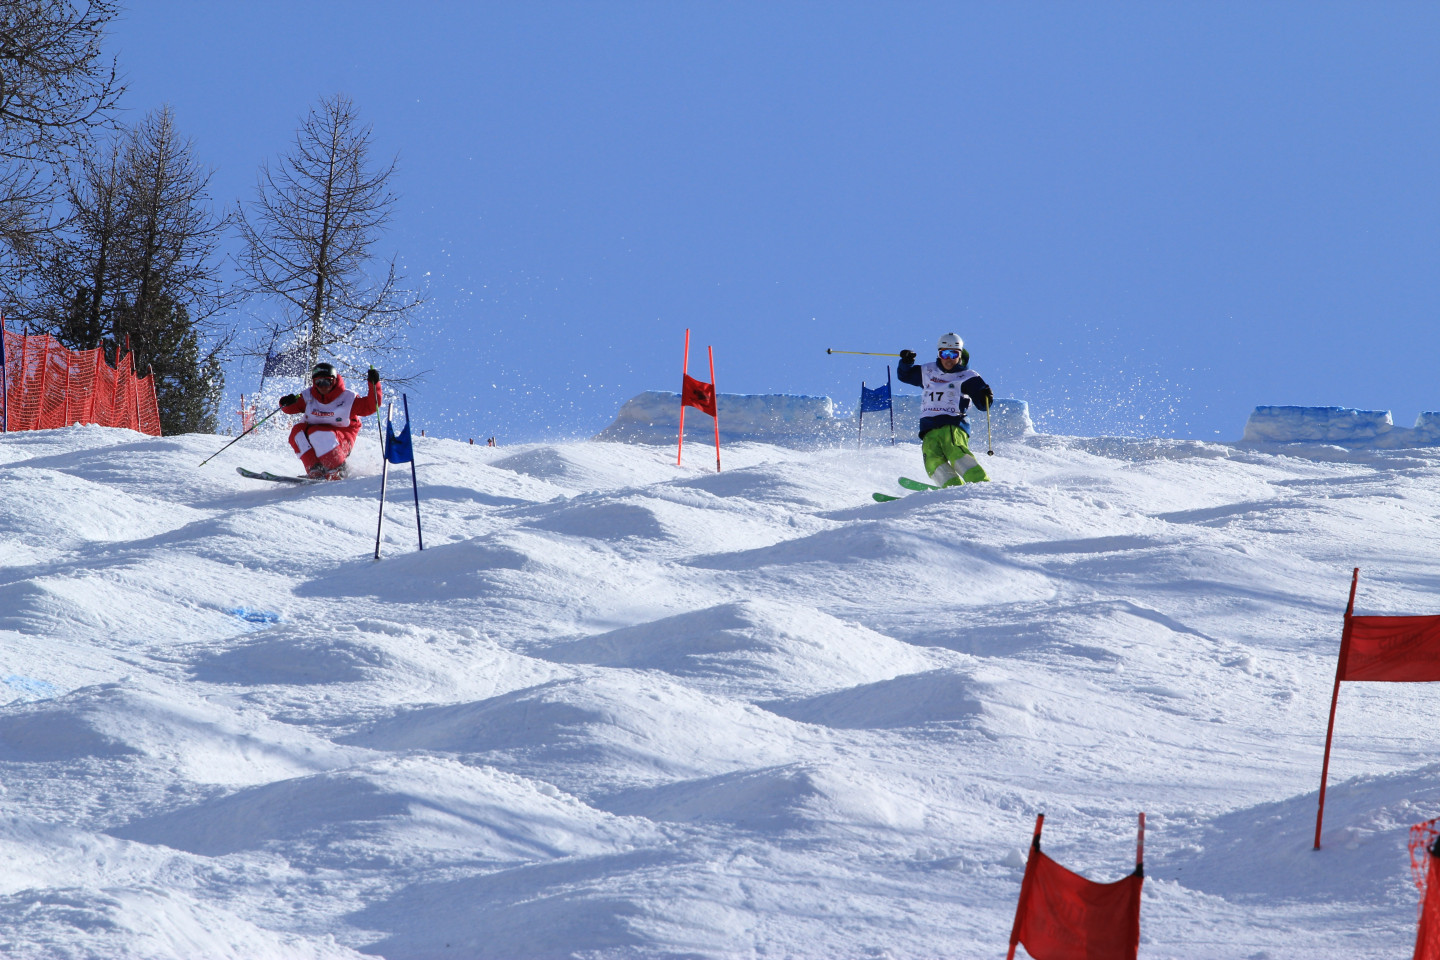 Moguls competition at the Palù park in Valmalenco